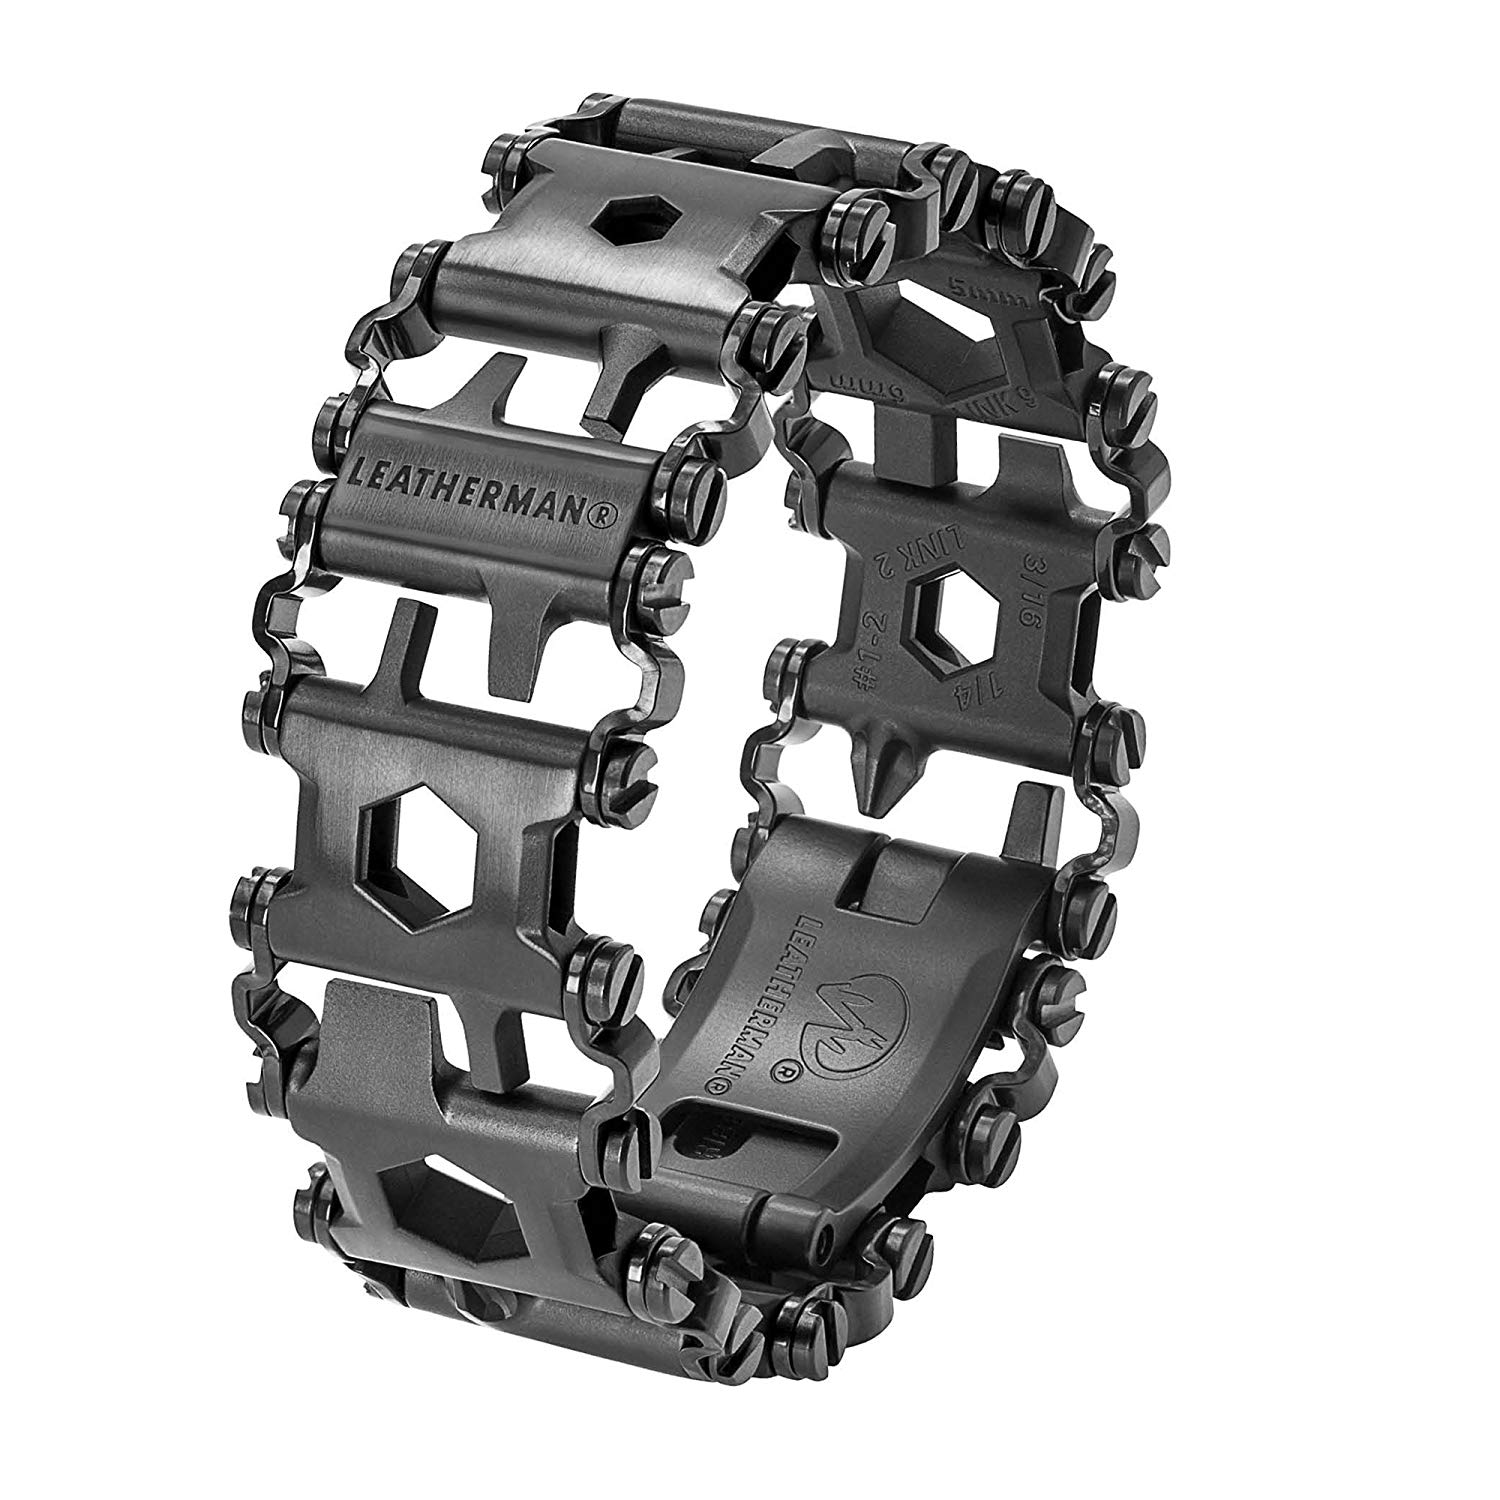 LEATHERMAN - Tread Bracelet, The Original Travel Friendly Wearable Multitool